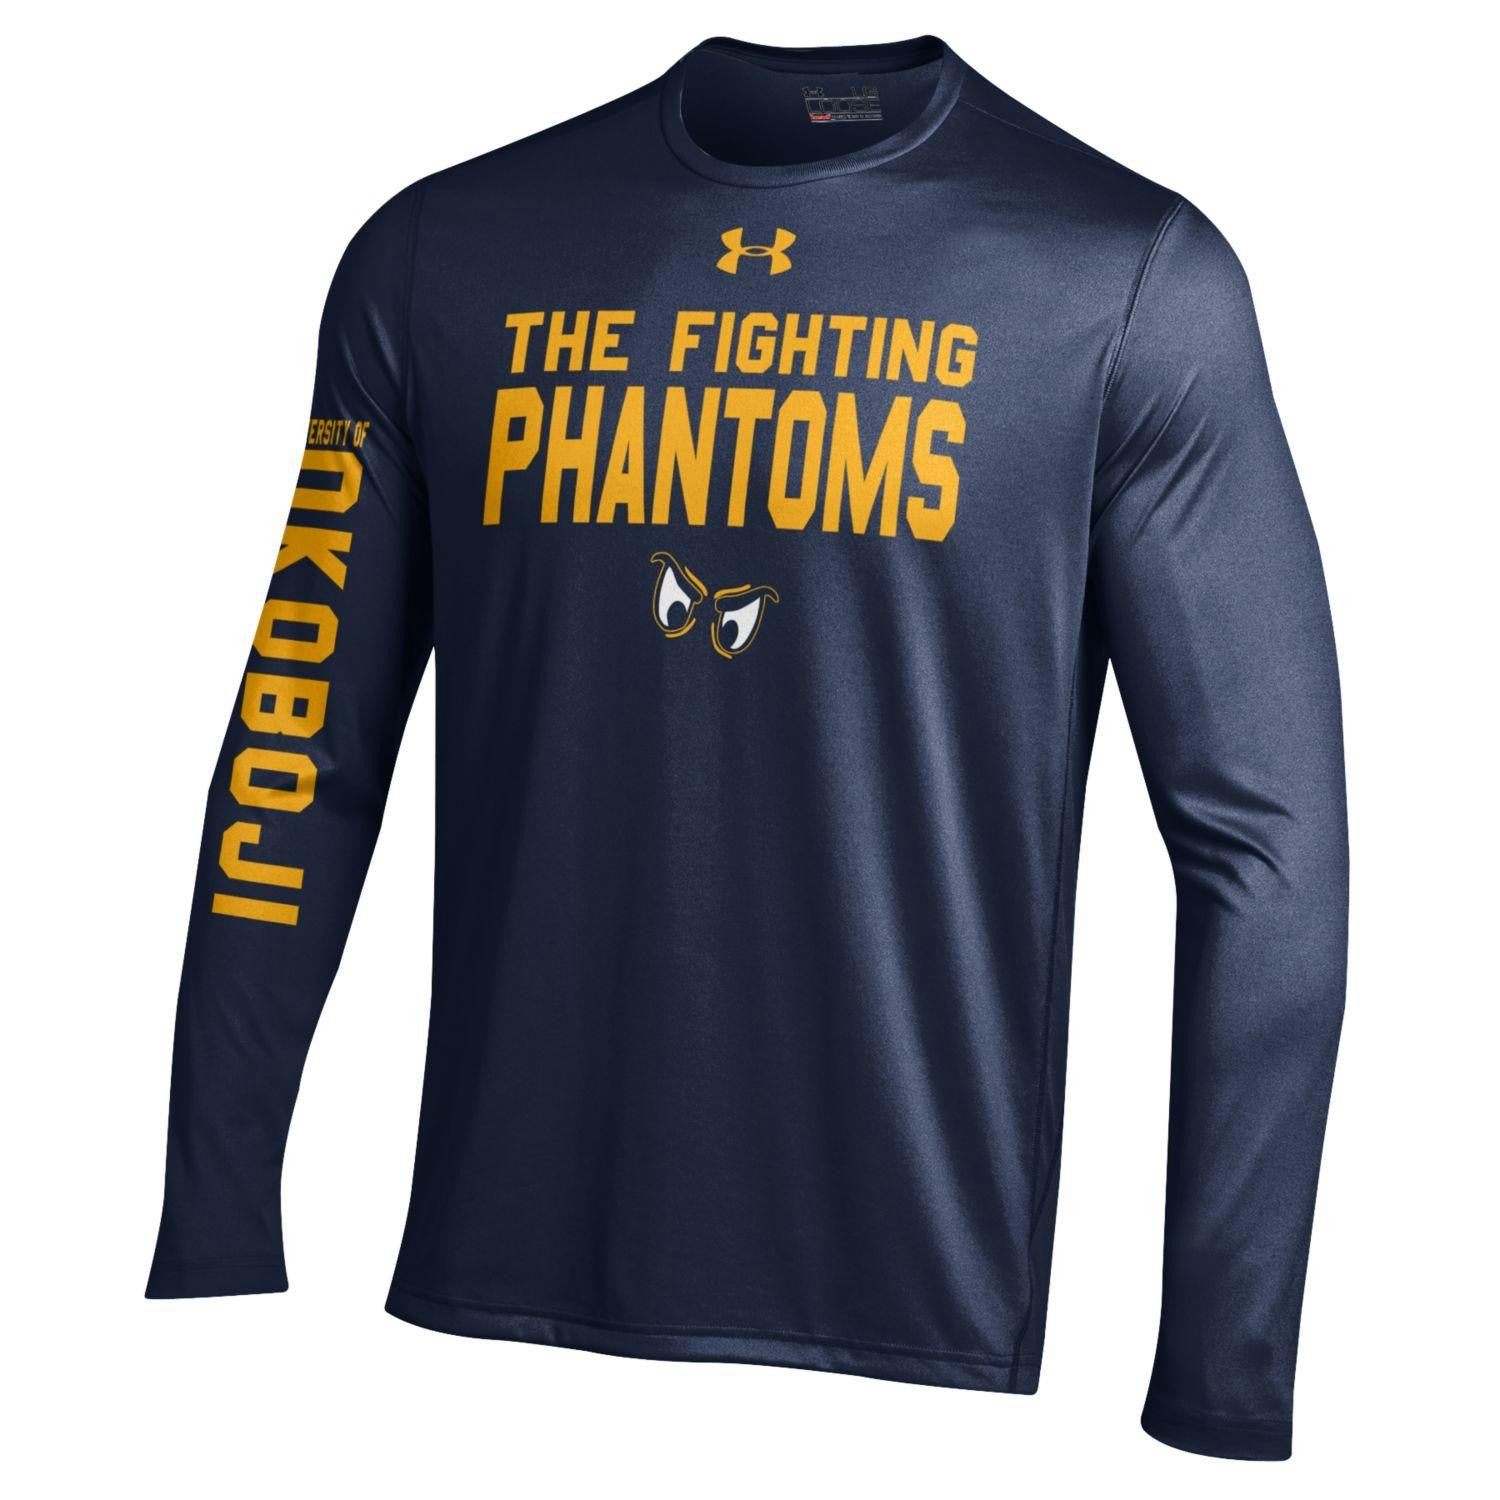 Phantom Team LS Tee - Navy